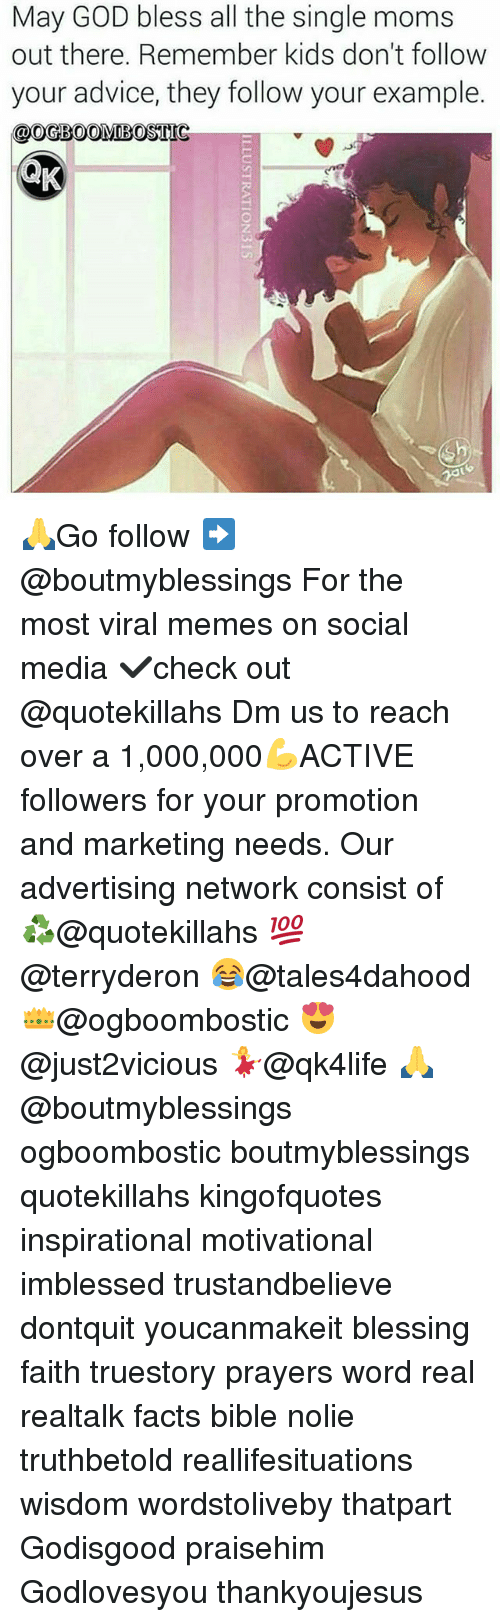 Advice, Facts, and God: May GOD bless all the single moms  out there. Remember kids don't follow  your advice, they follow your example.  OOGBOOMIBOSTIG 🙏Go follow ➡@boutmyblessings For the most viral memes on social media ✔check out @quotekillahs Dm us to reach over a 1,000,000💪ACTIVE followers for your promotion and marketing needs. Our advertising network consist of ♻@quotekillahs 💯@terryderon 😂@tales4dahood 👑@ogboombostic 😍@just2vicious 💃@qk4life 🙏@boutmyblessings ogboombostic boutmyblessings quotekillahs kingofquotes inspirational motivational imblessed trustandbelieve dontquit youcanmakeit blessing faith truestory prayers word real realtalk facts bible nolie truthbetold reallifesituations wisdom wordstoliveby thatpart Godisgood praisehim Godlovesyou thankyoujesus